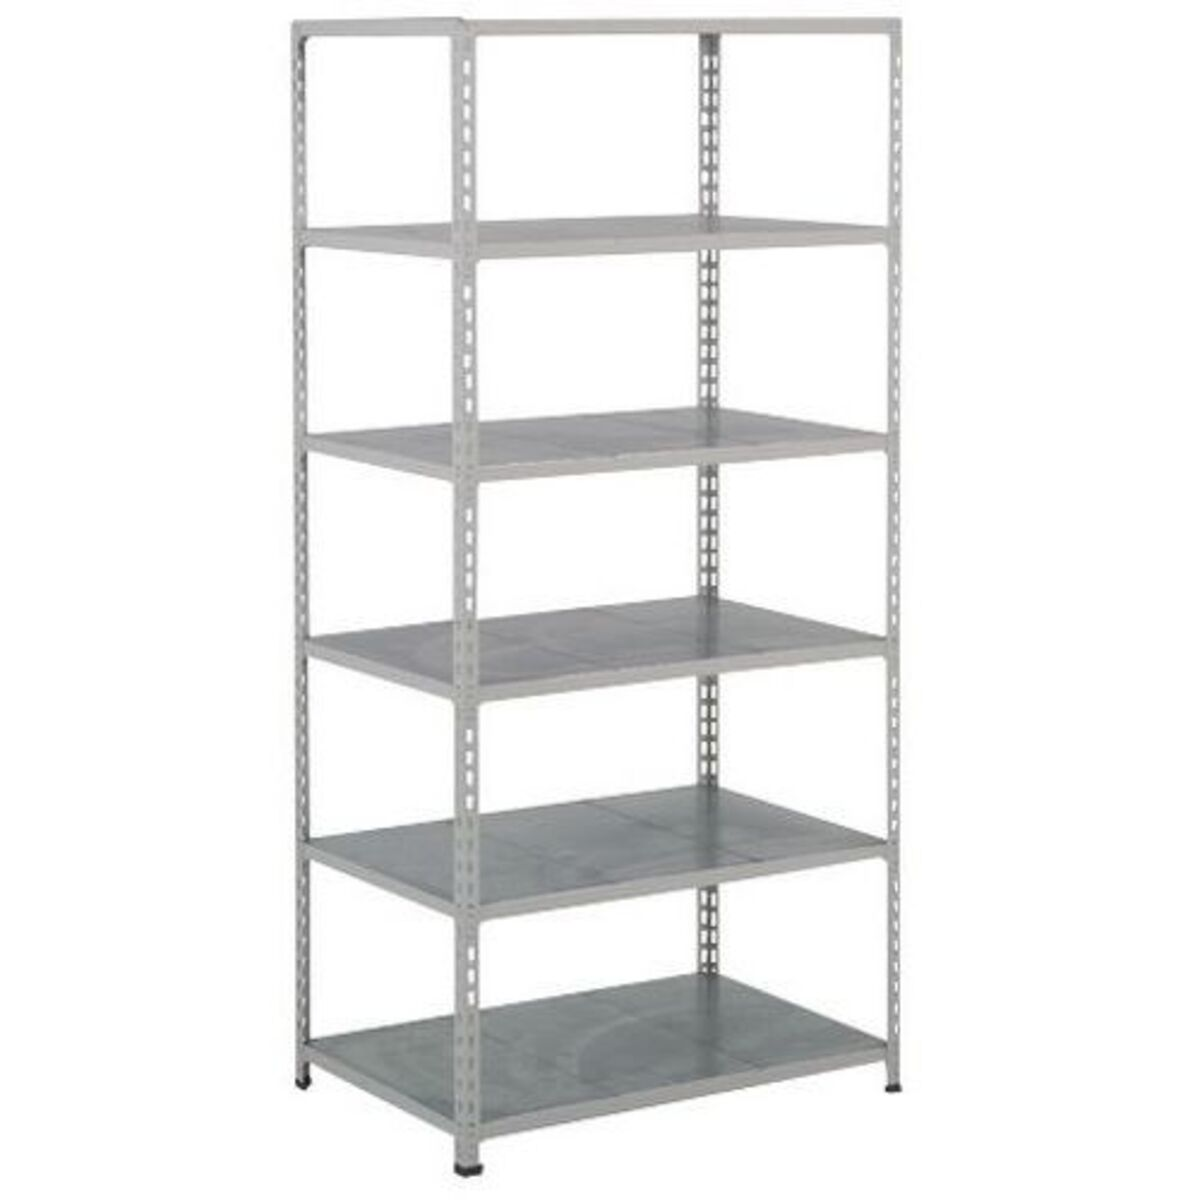 Rayonnage Rapid 2 6 tablettes 1830x915x455 gris clair